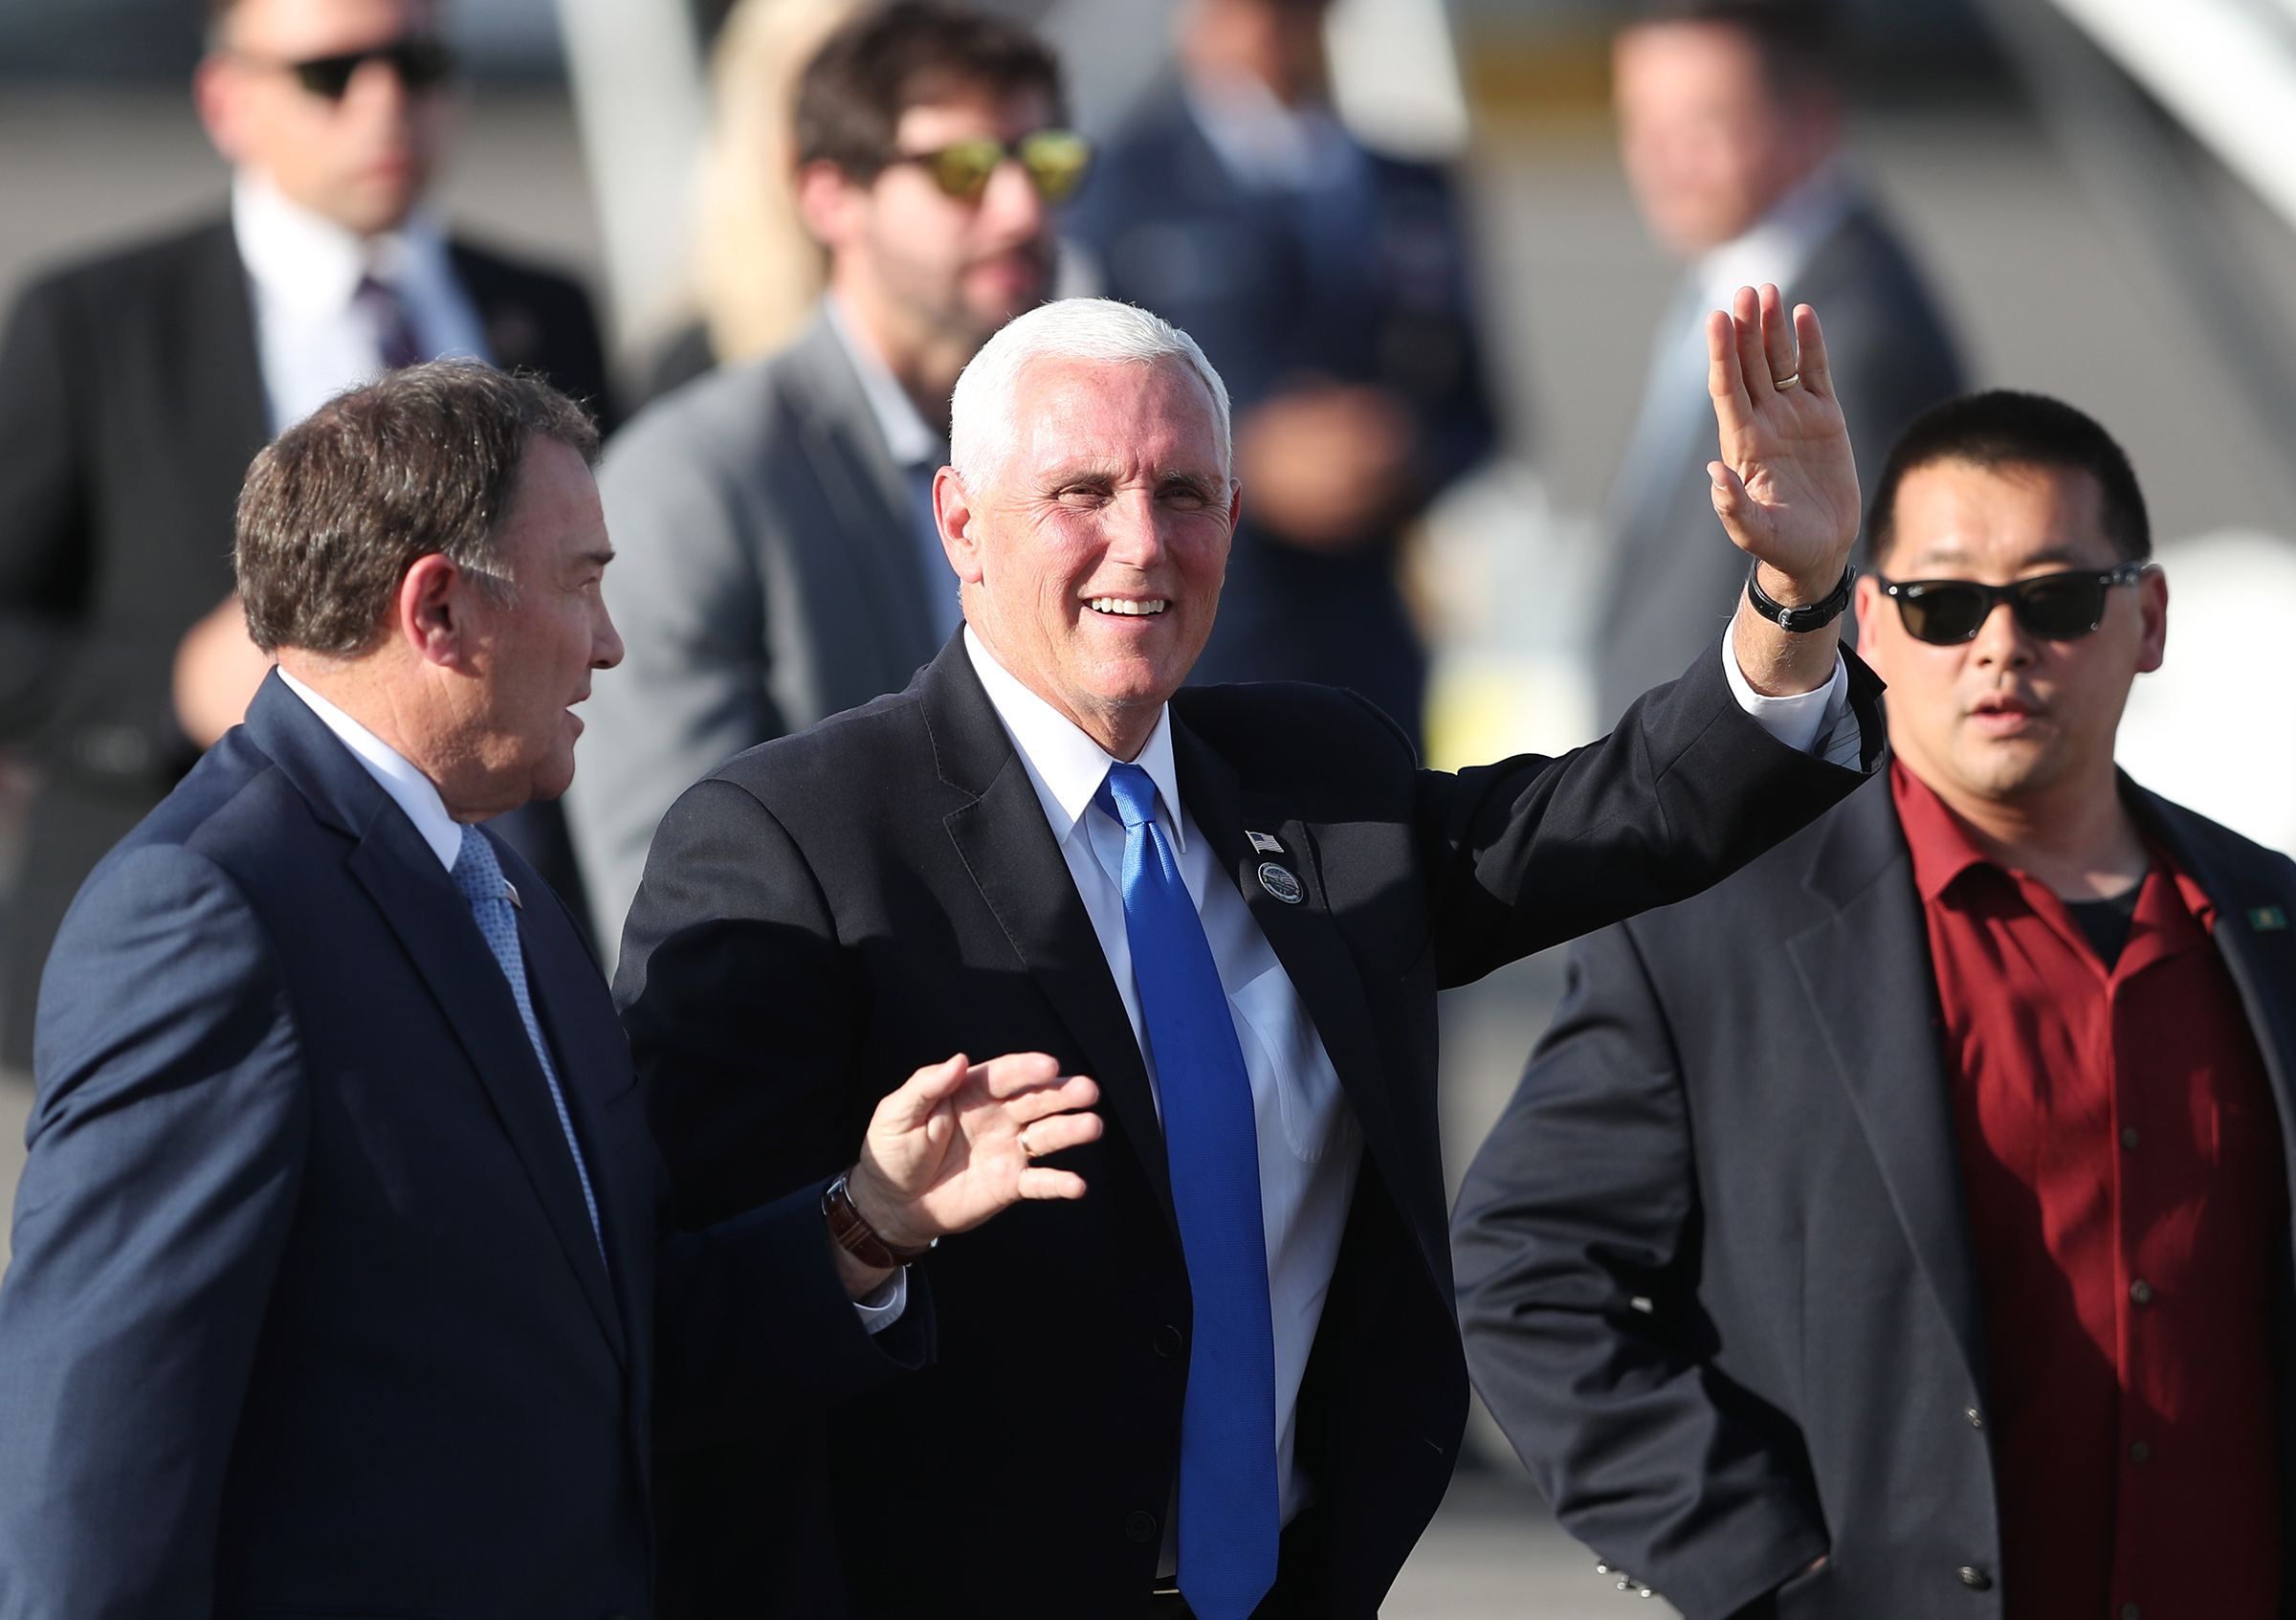 Vice President Mike Pence waves as he and Gov. Gary Herbert greet the crowd at the general aviation facilities at Salt Lake City International Airport on Wednesday, Aug. 21, 2019.